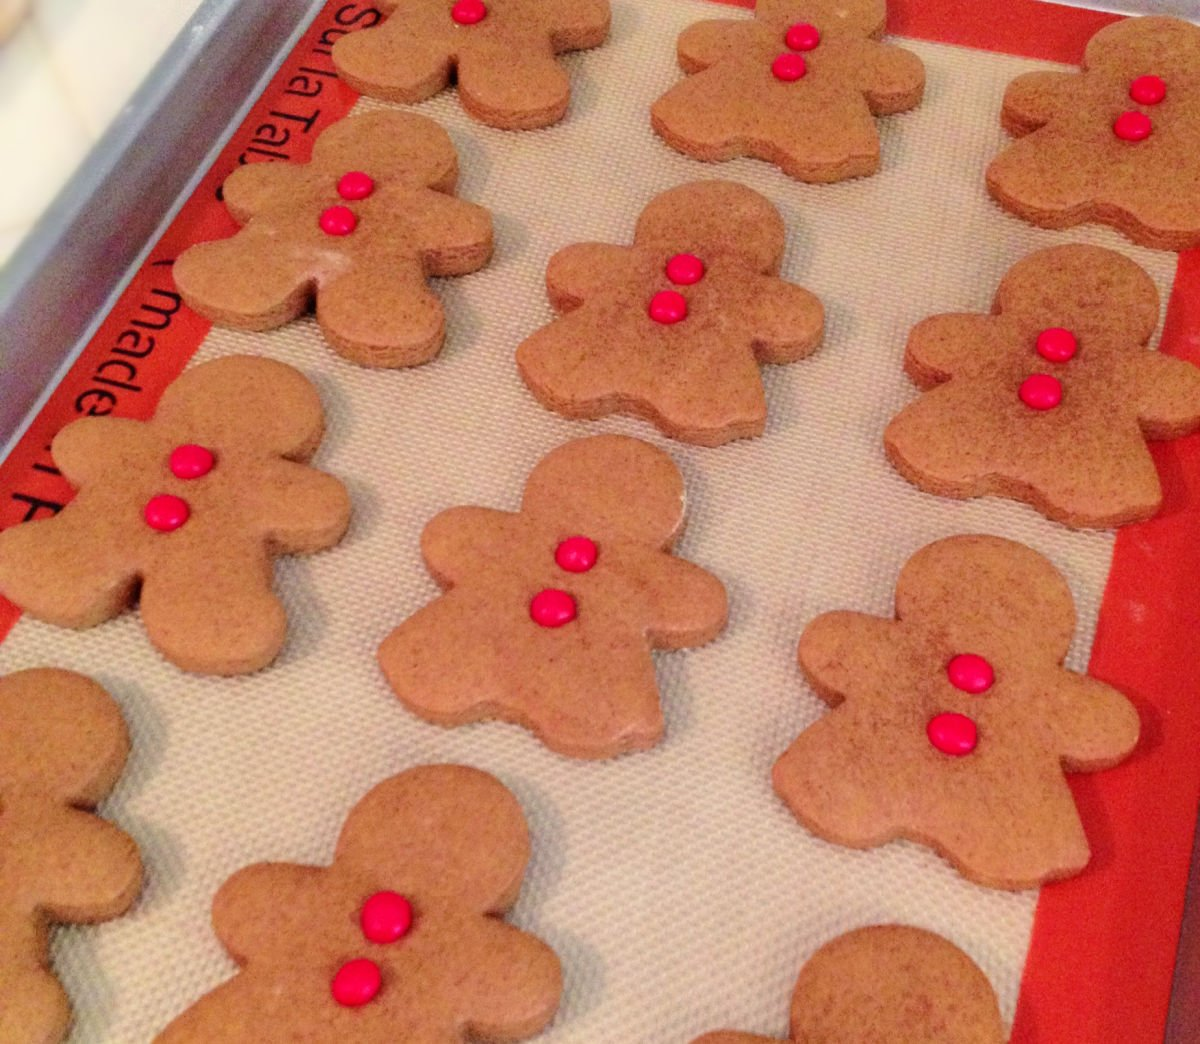 gingerbread cookies ready to be baked on baking sheet